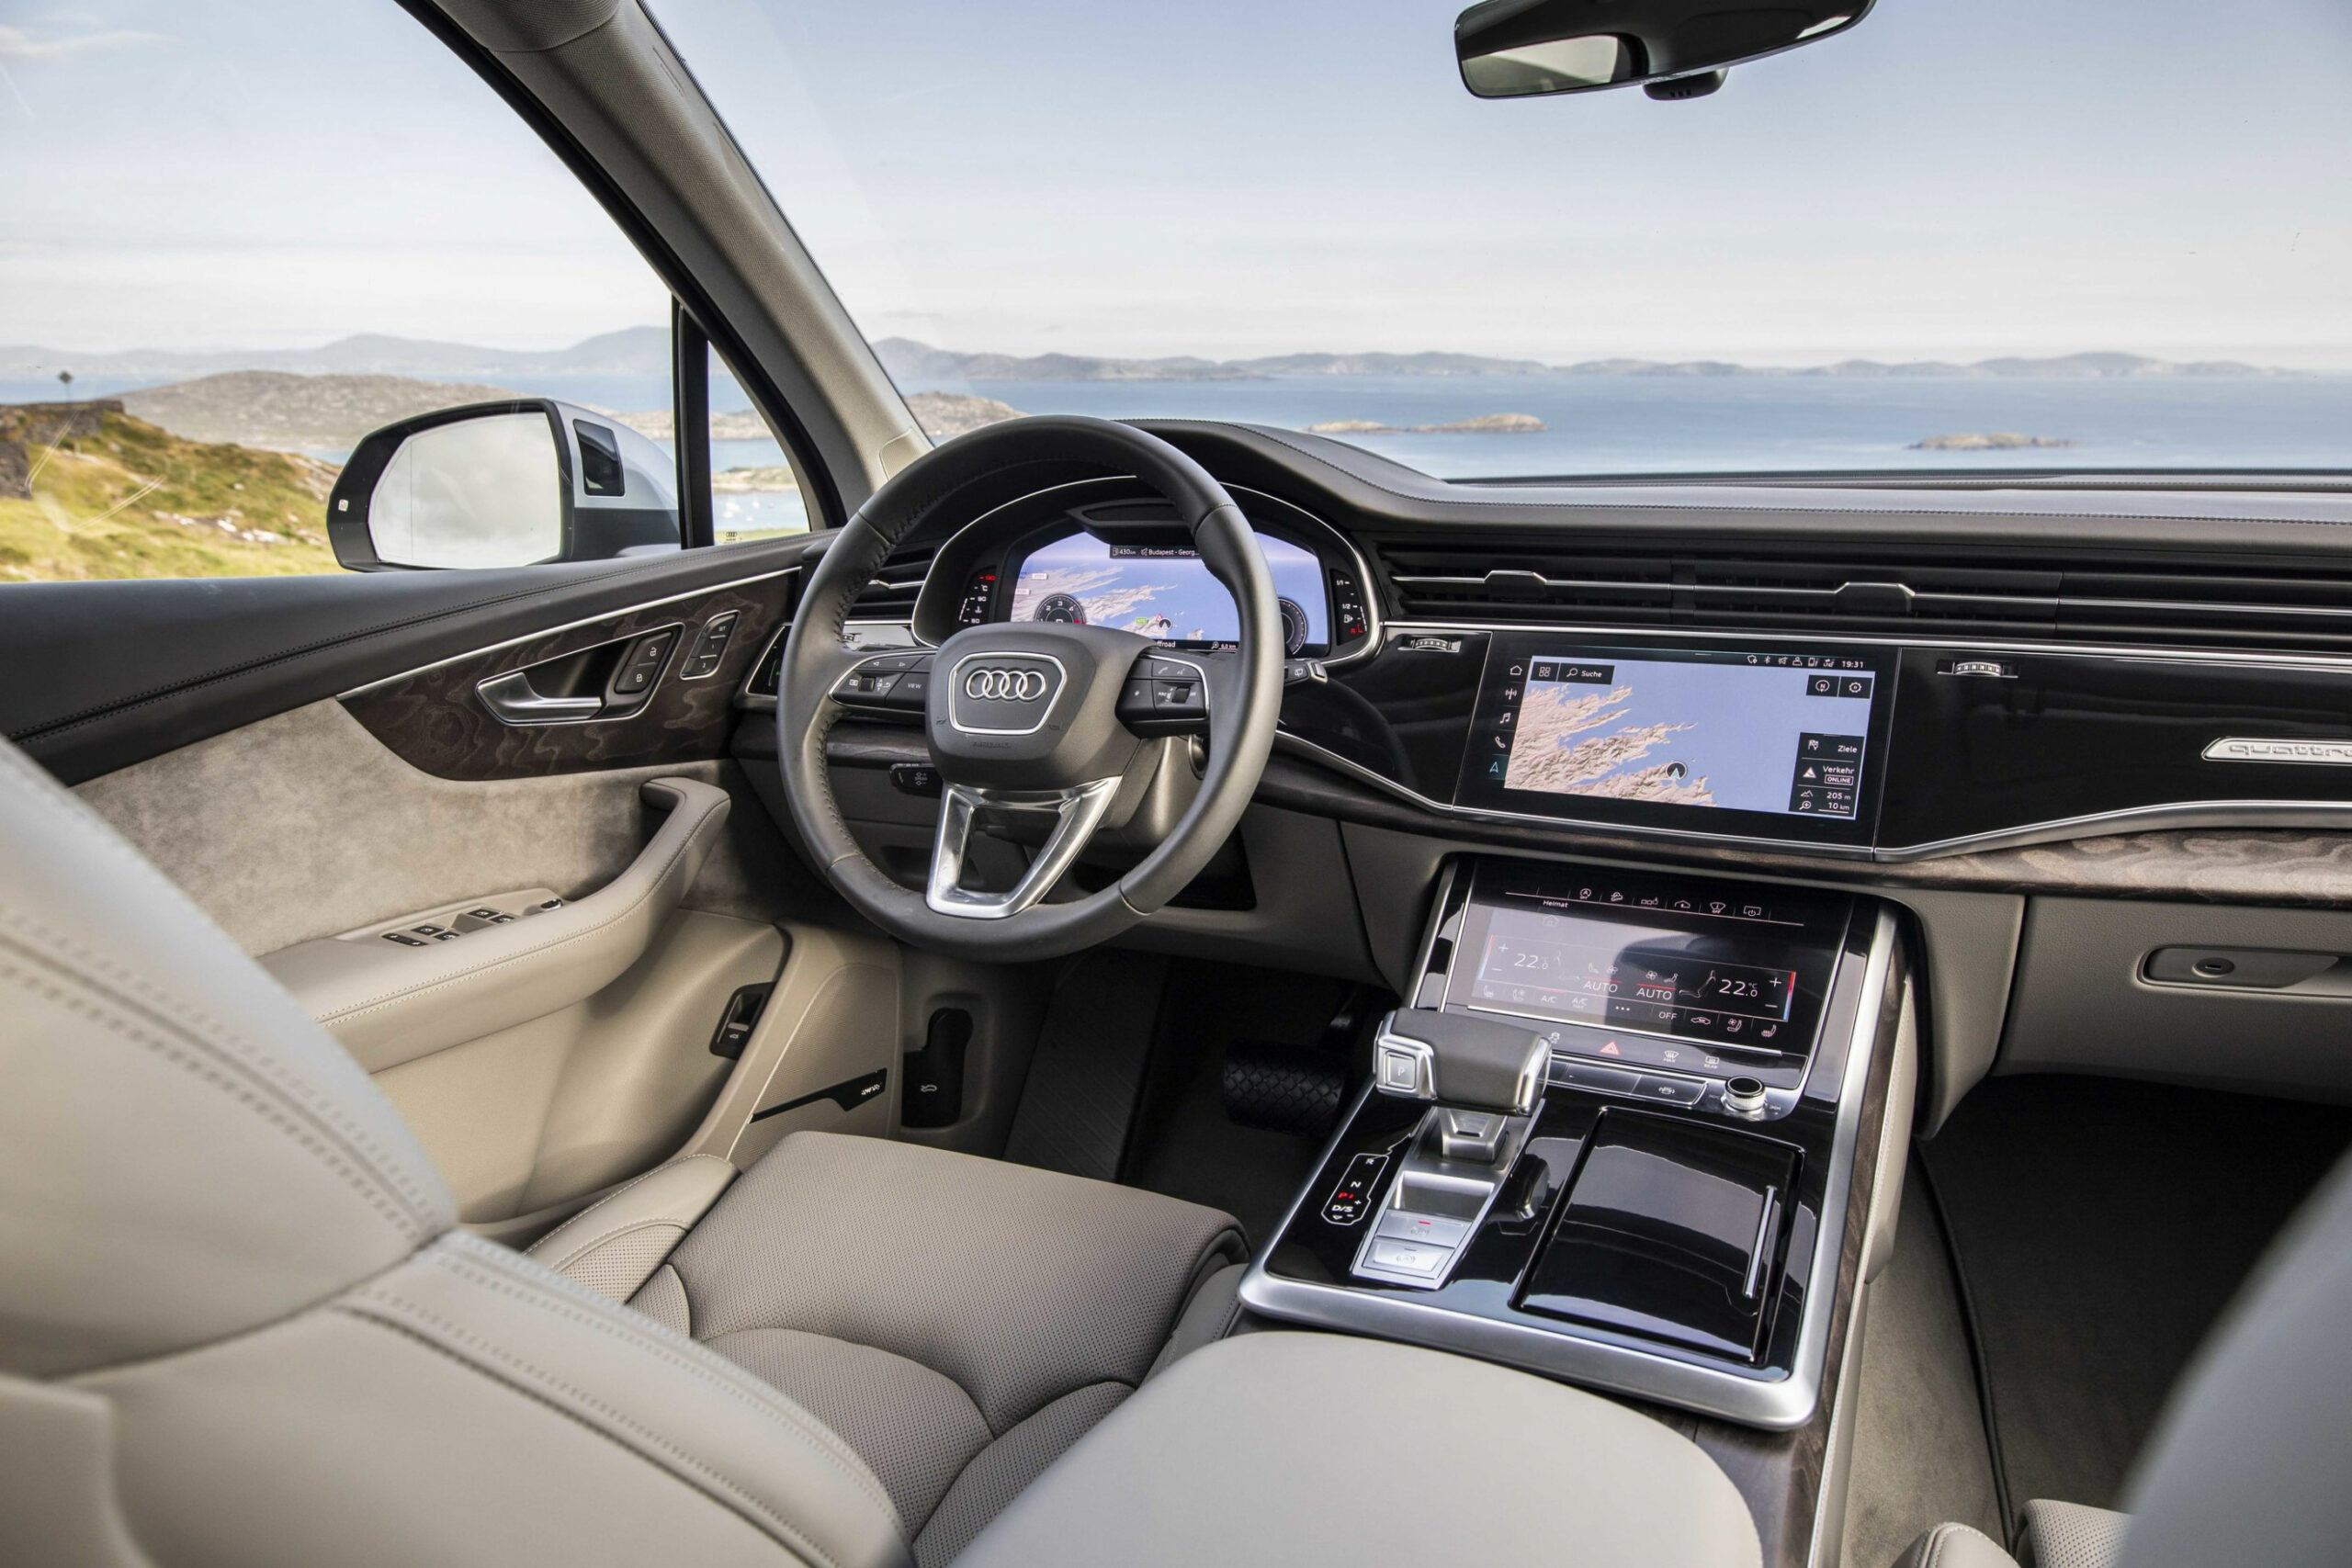 Sneak peek at the new 11 version of the Audi Q11 - Esquire Middle ..